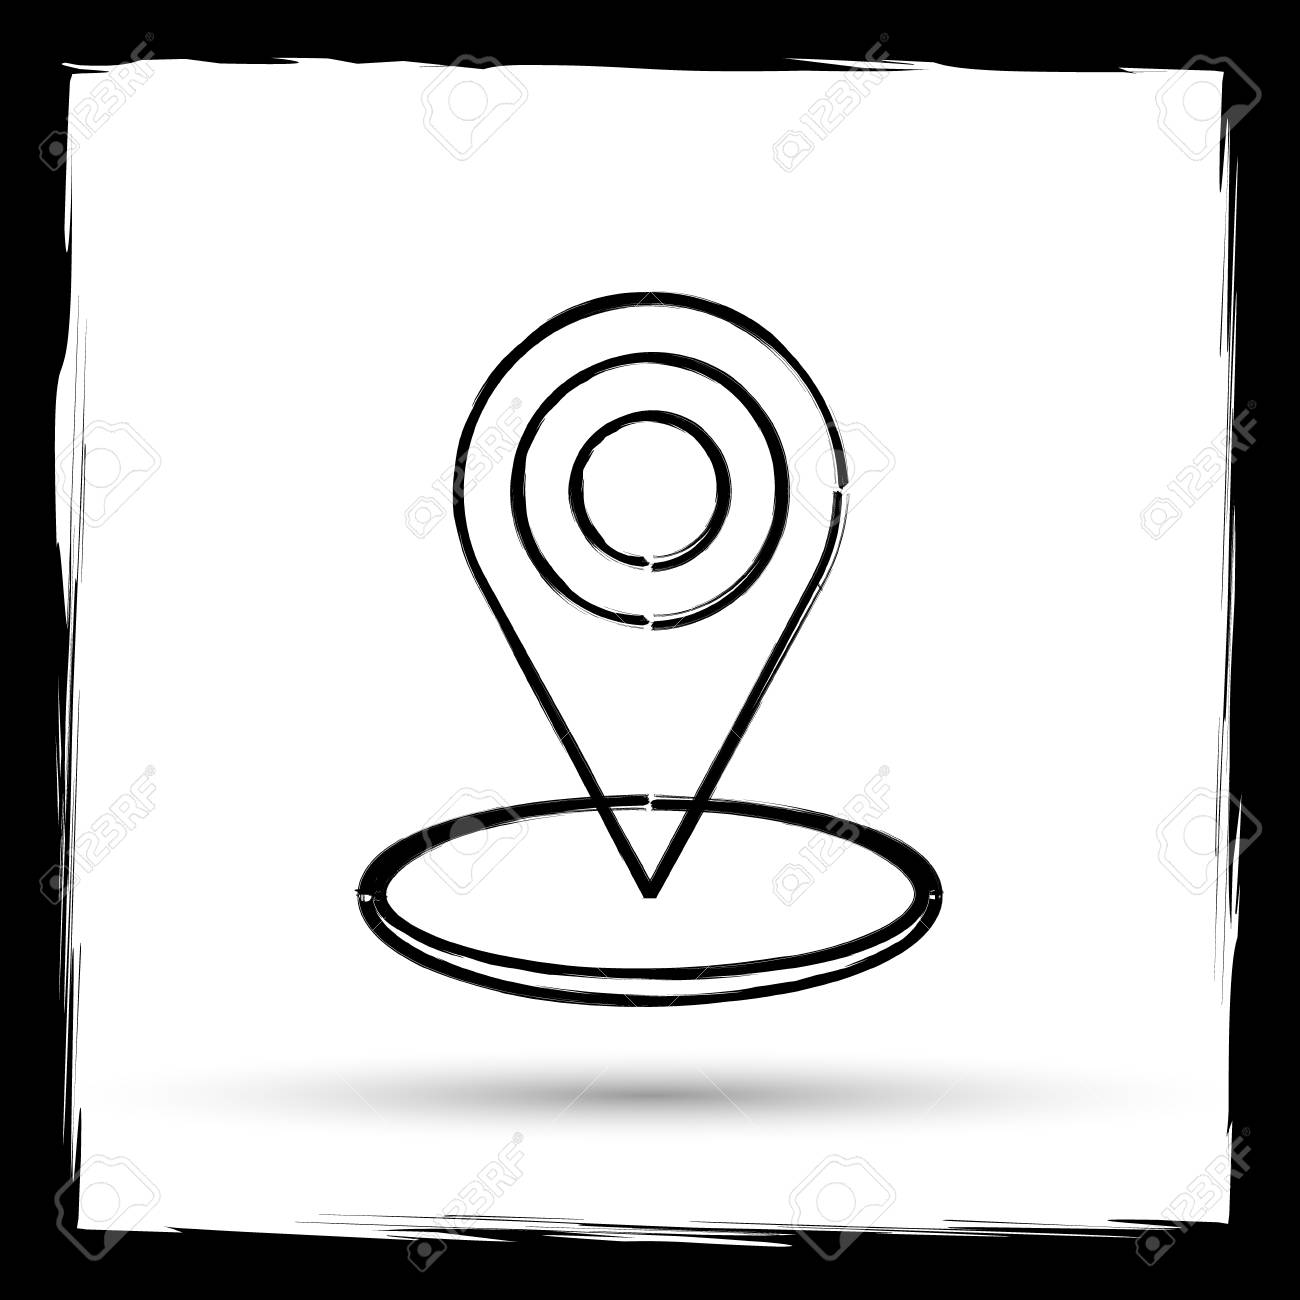 Pin location icon  Internet button on white background  Outline